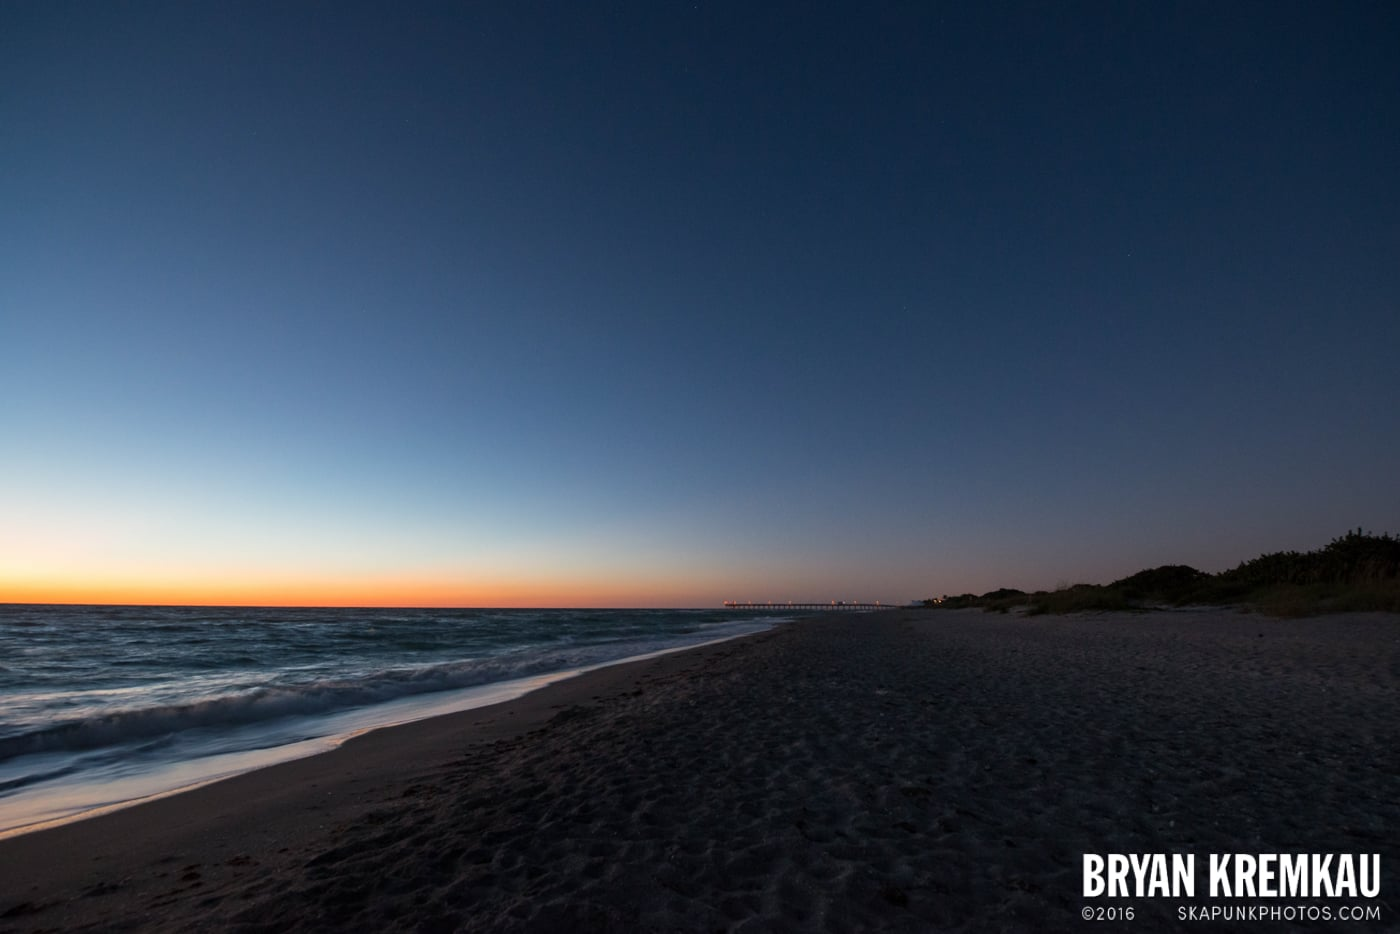 Sunsets, Astrophotography & Birds @ Venice, Florida - 10.25.14 - 11.5.14 (89)